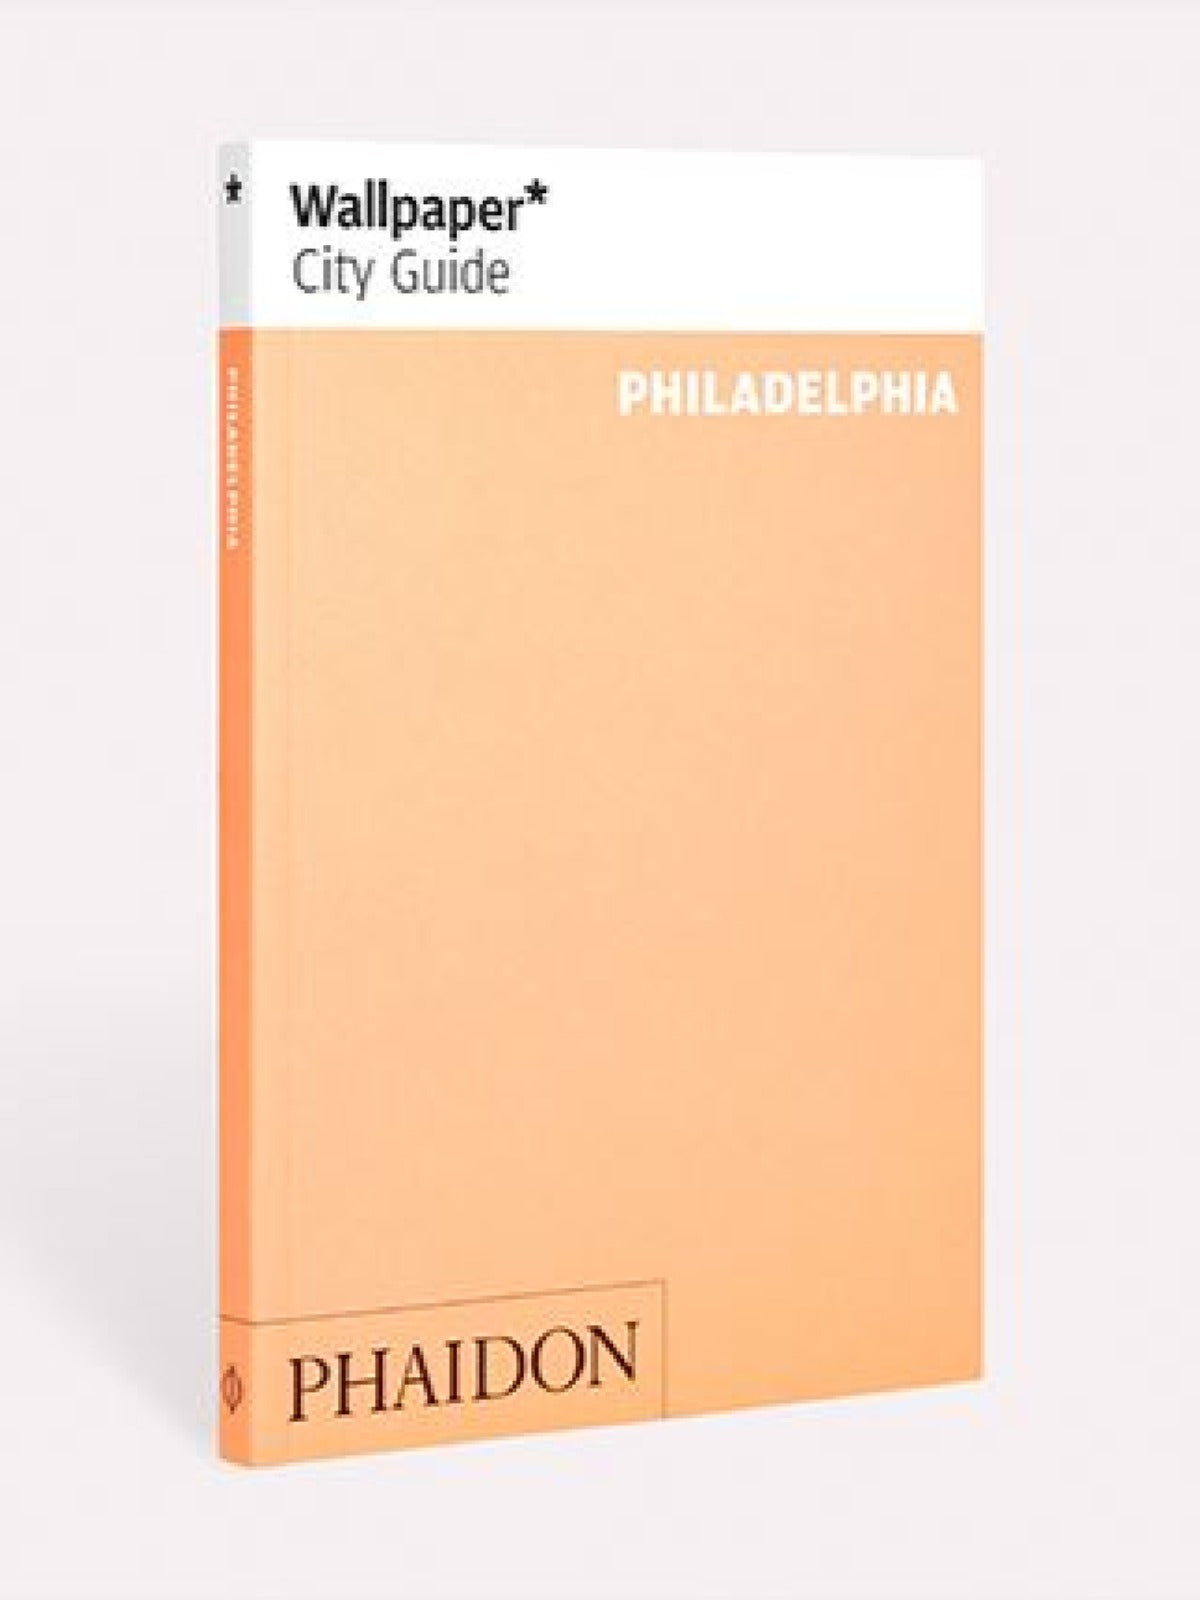 City Guide - Phl